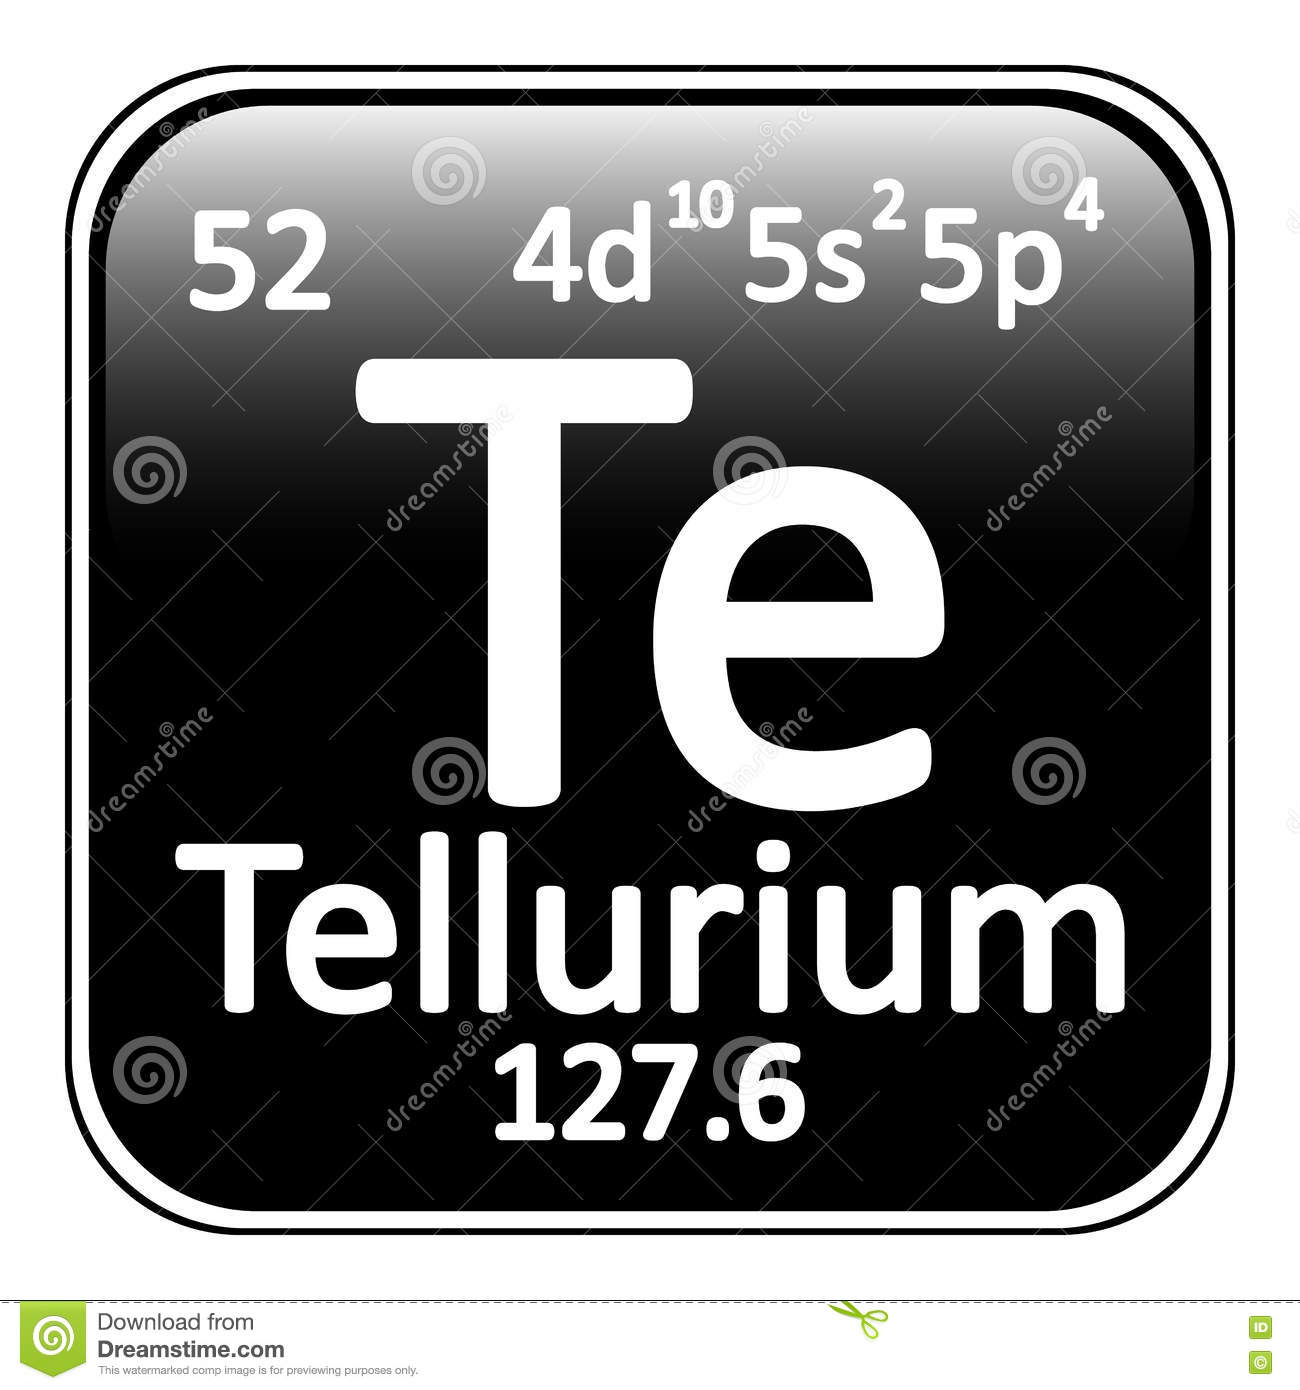 Periodic table element tellurium icon stock illustration image royalty free illustration download periodic table element tellurium gamestrikefo Choice Image